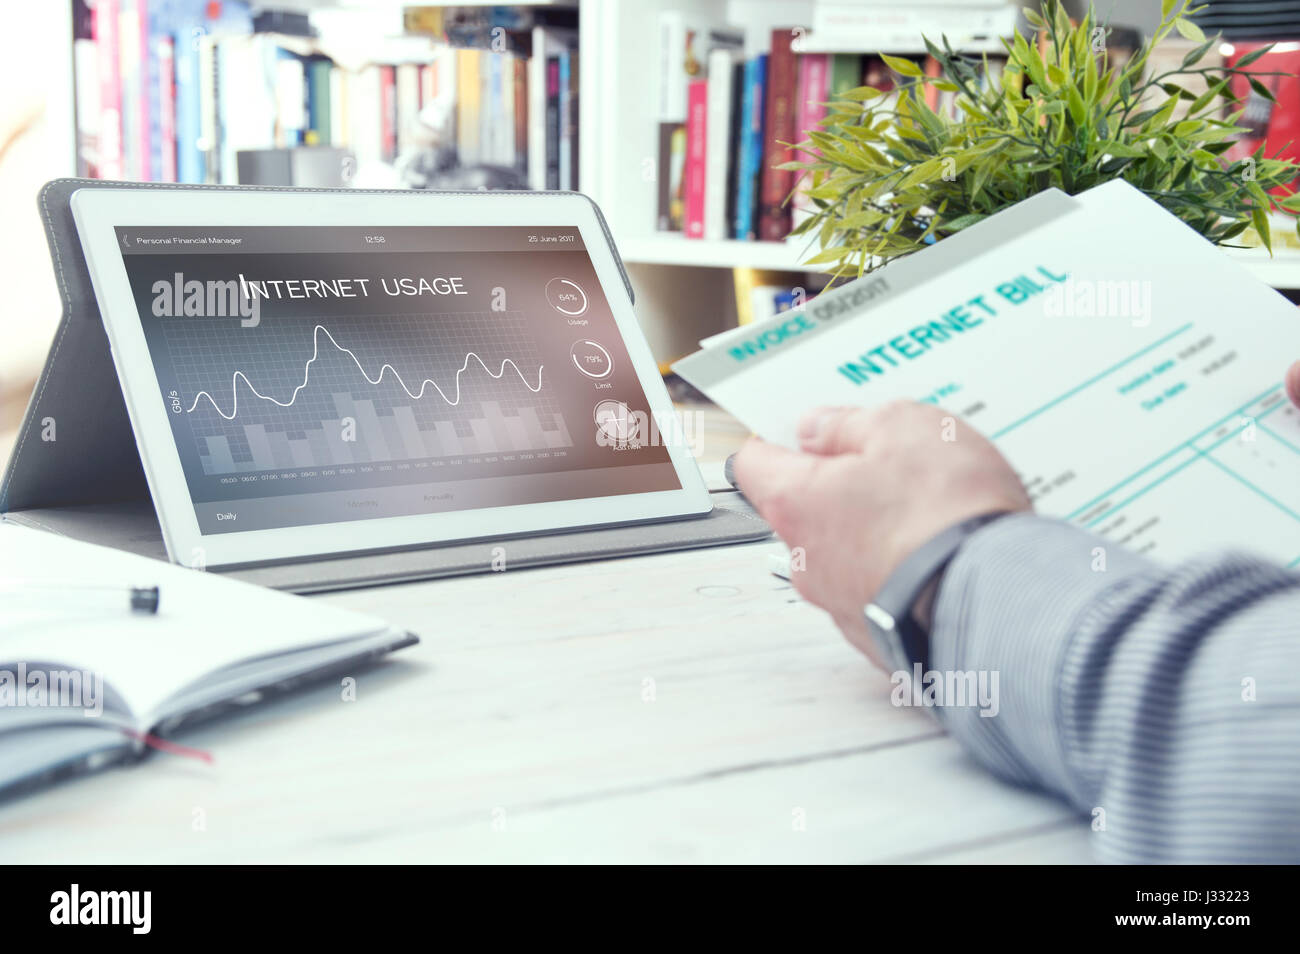 Tablet pc with internet usage application and man holds bill for internet. Internet usage application made in graphic - Stock Image